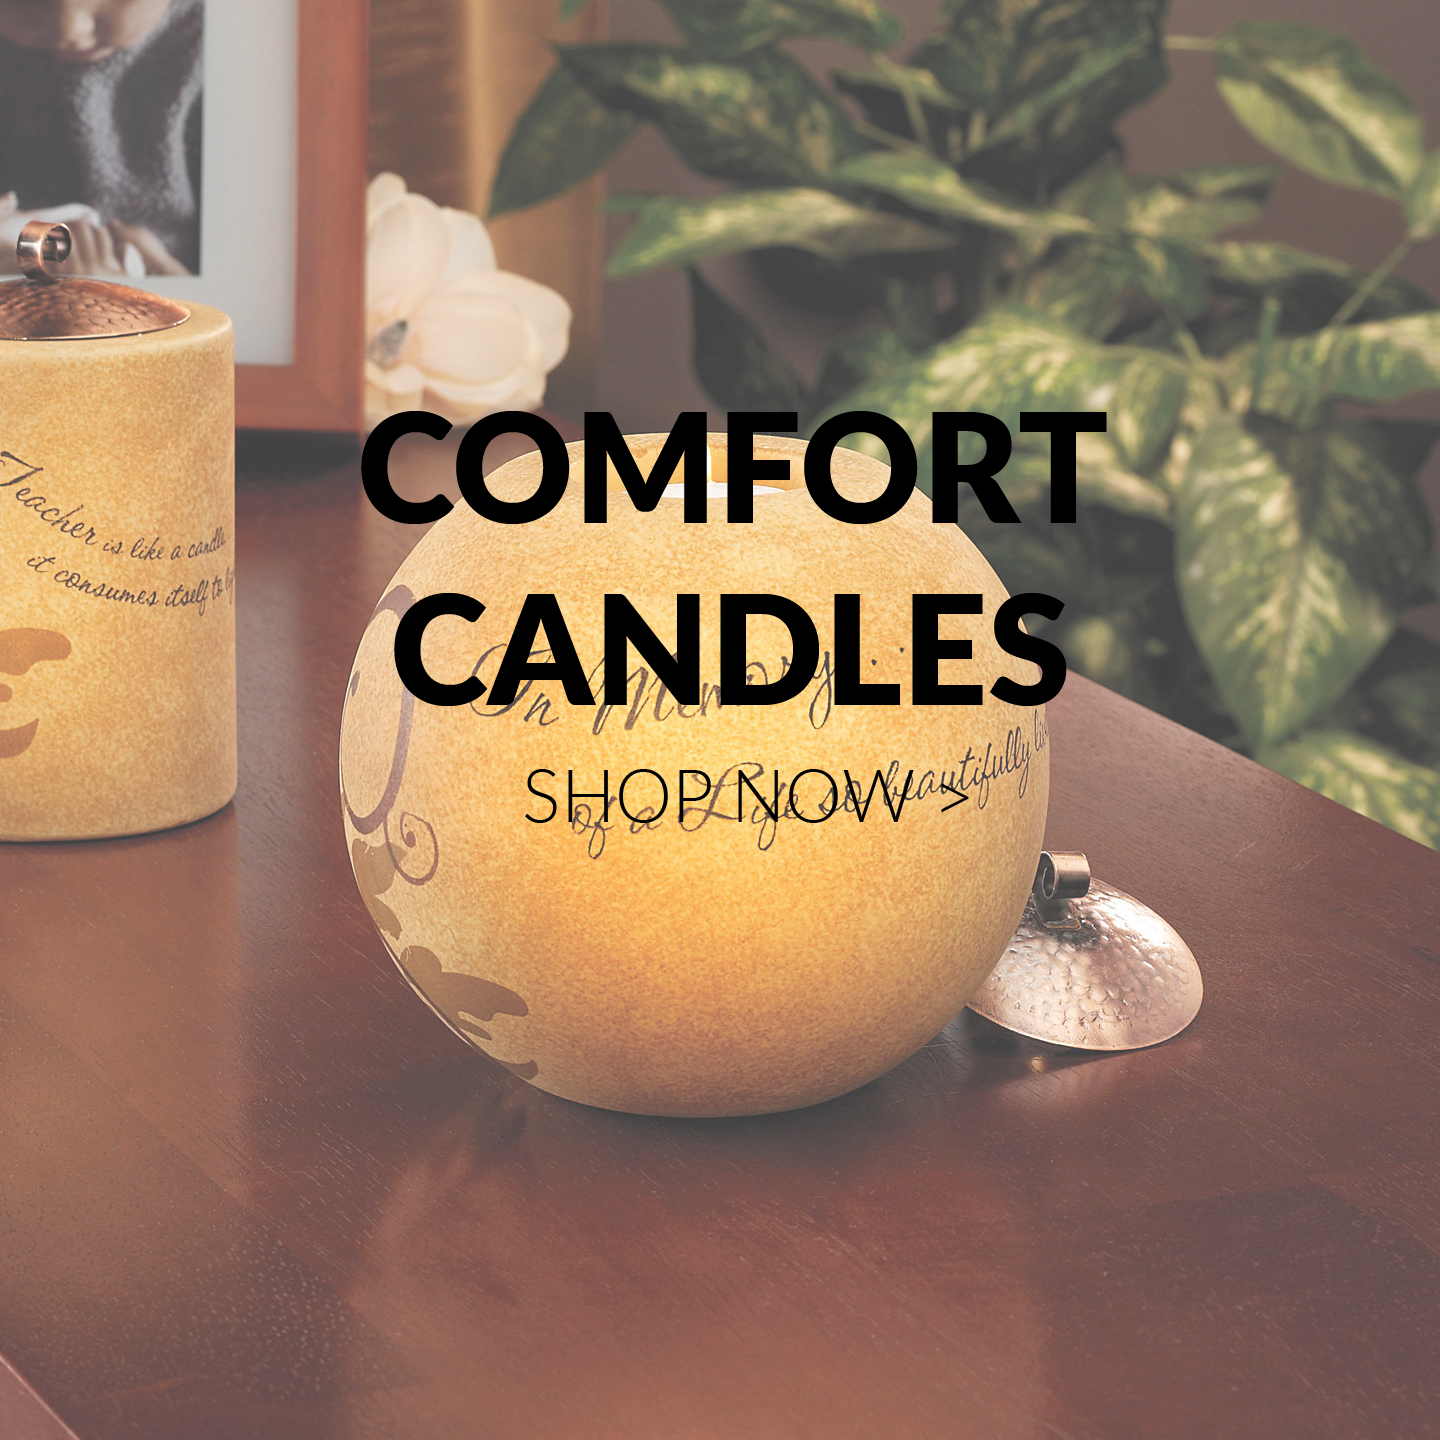 Comfort Candles